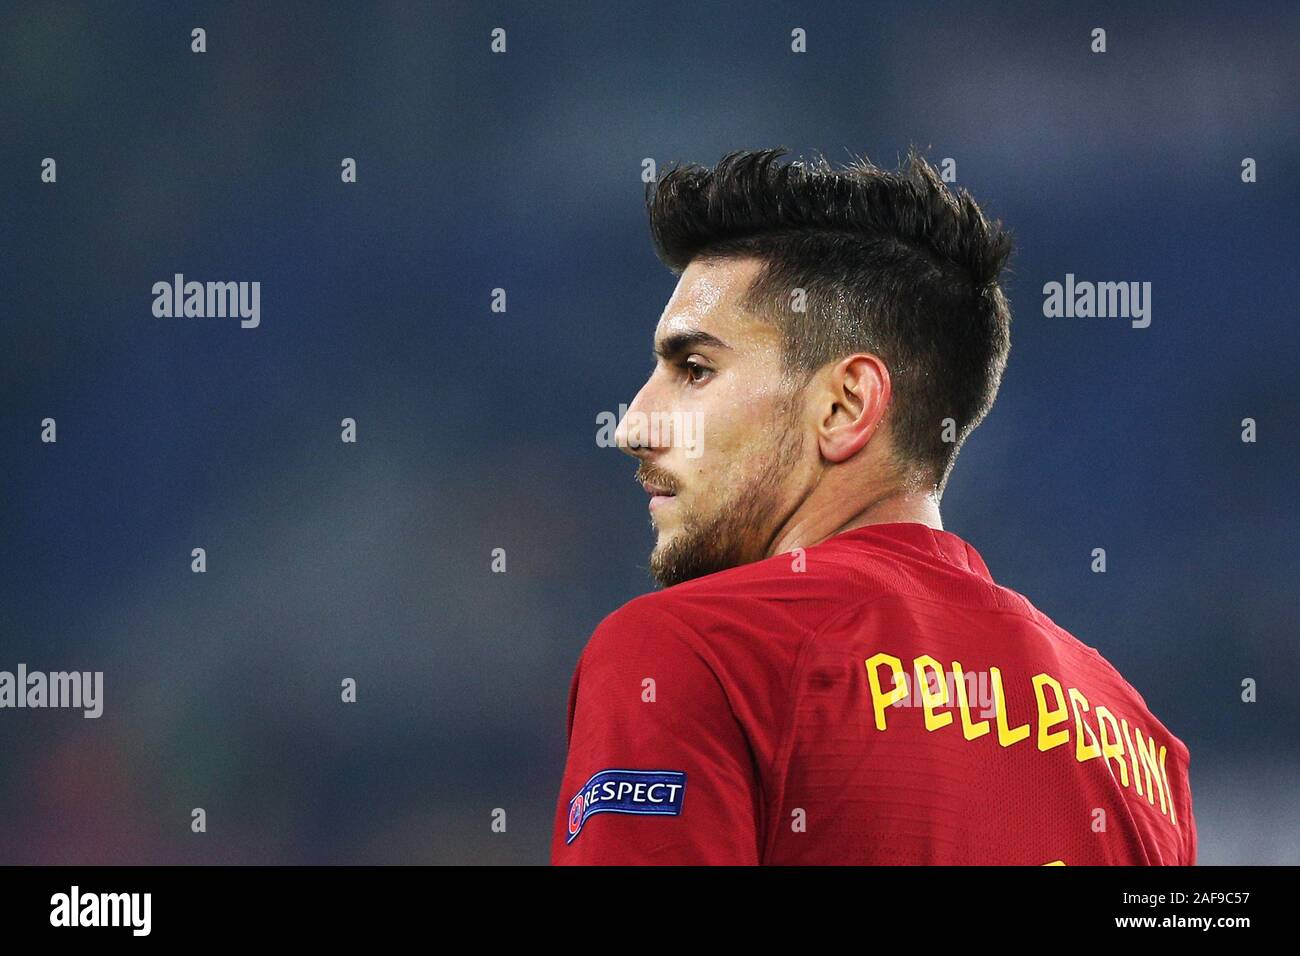 Lorenzo Pellegrini of Roma reacts during the UEFA Europa League, Group J football match between AS Roma and Wolfsberg AC on December 12, 2019 at Stadio Olimpico in Rome, Italy - Photo Federico Proietti/ESPA-Images Stock Photo